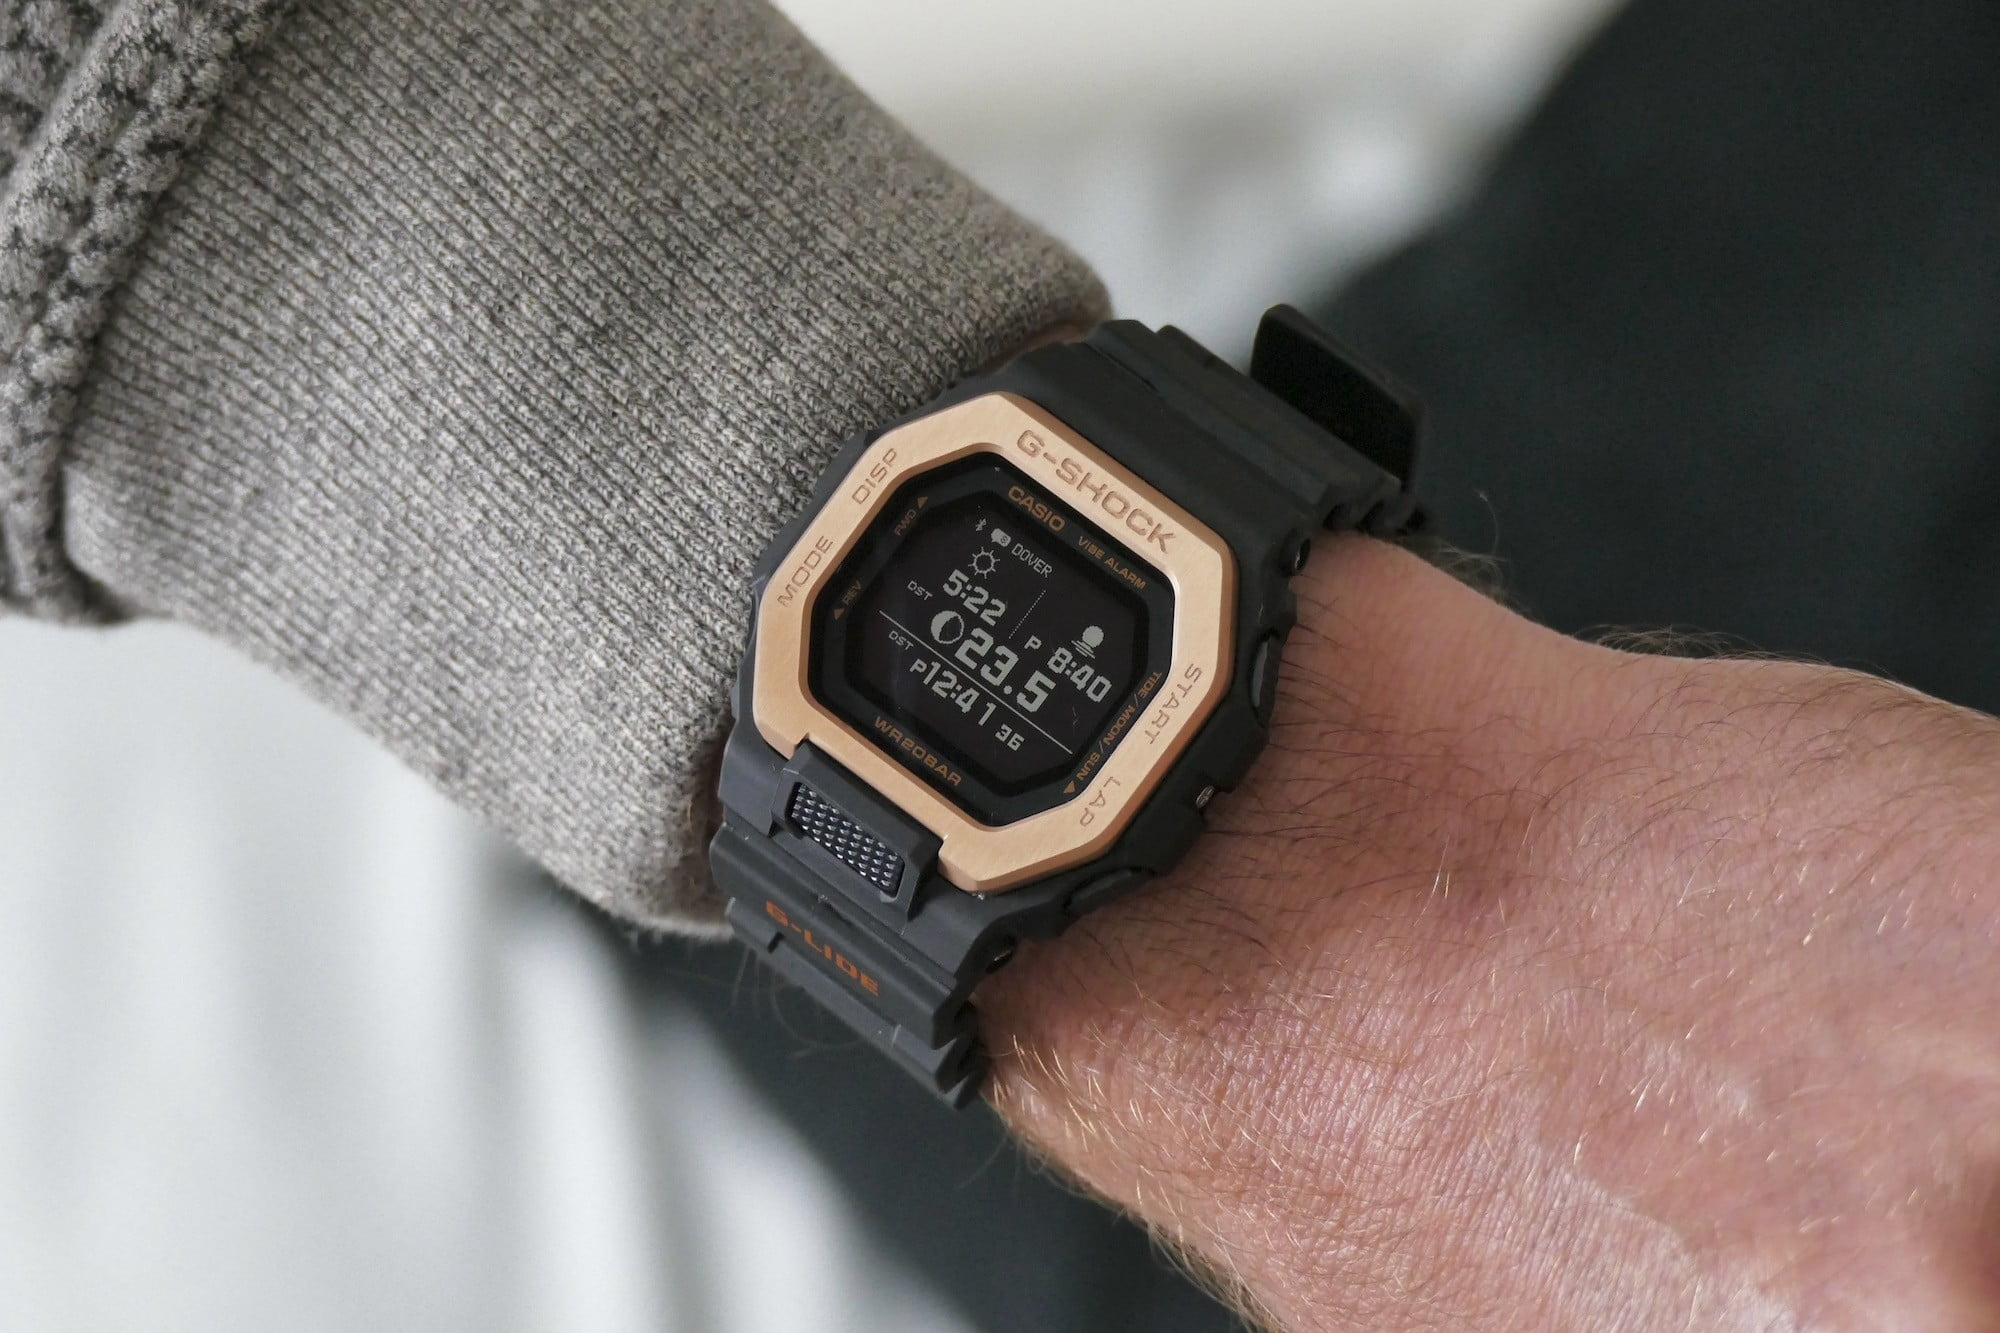 The G Shock GBX-100NS showing sunrise and sunset.